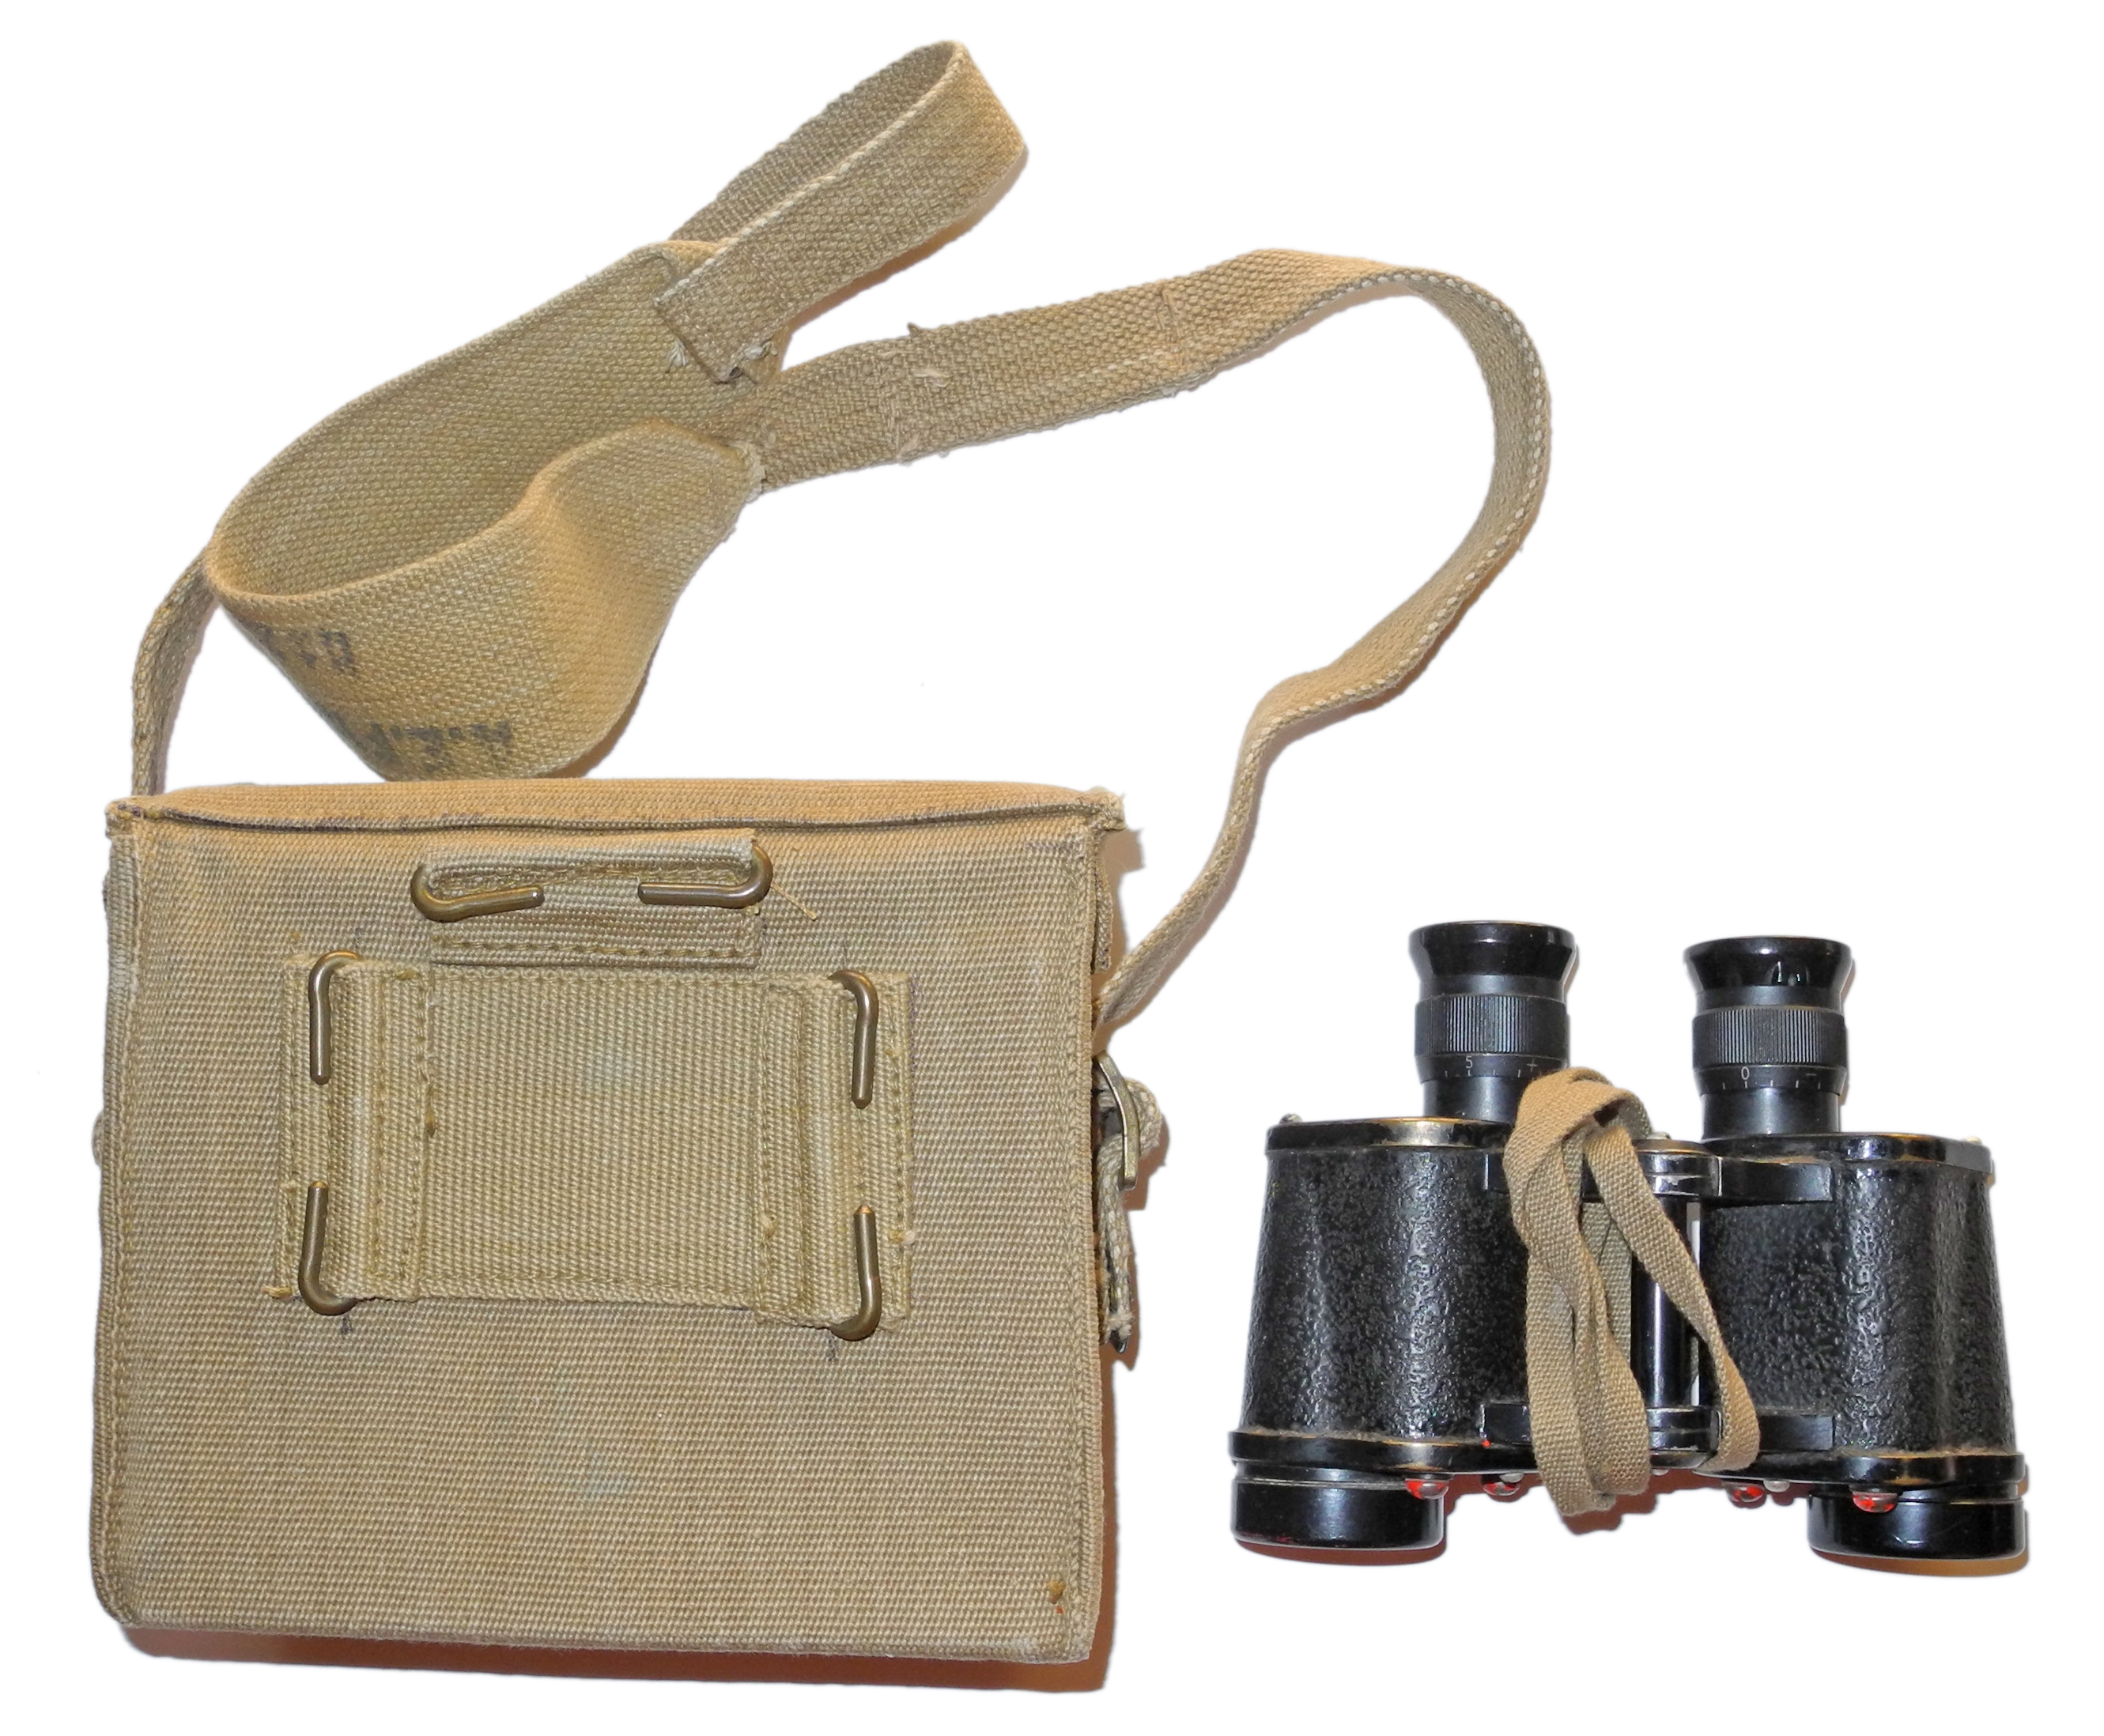 British service issue Prism Binoculars No. 2 Mk III